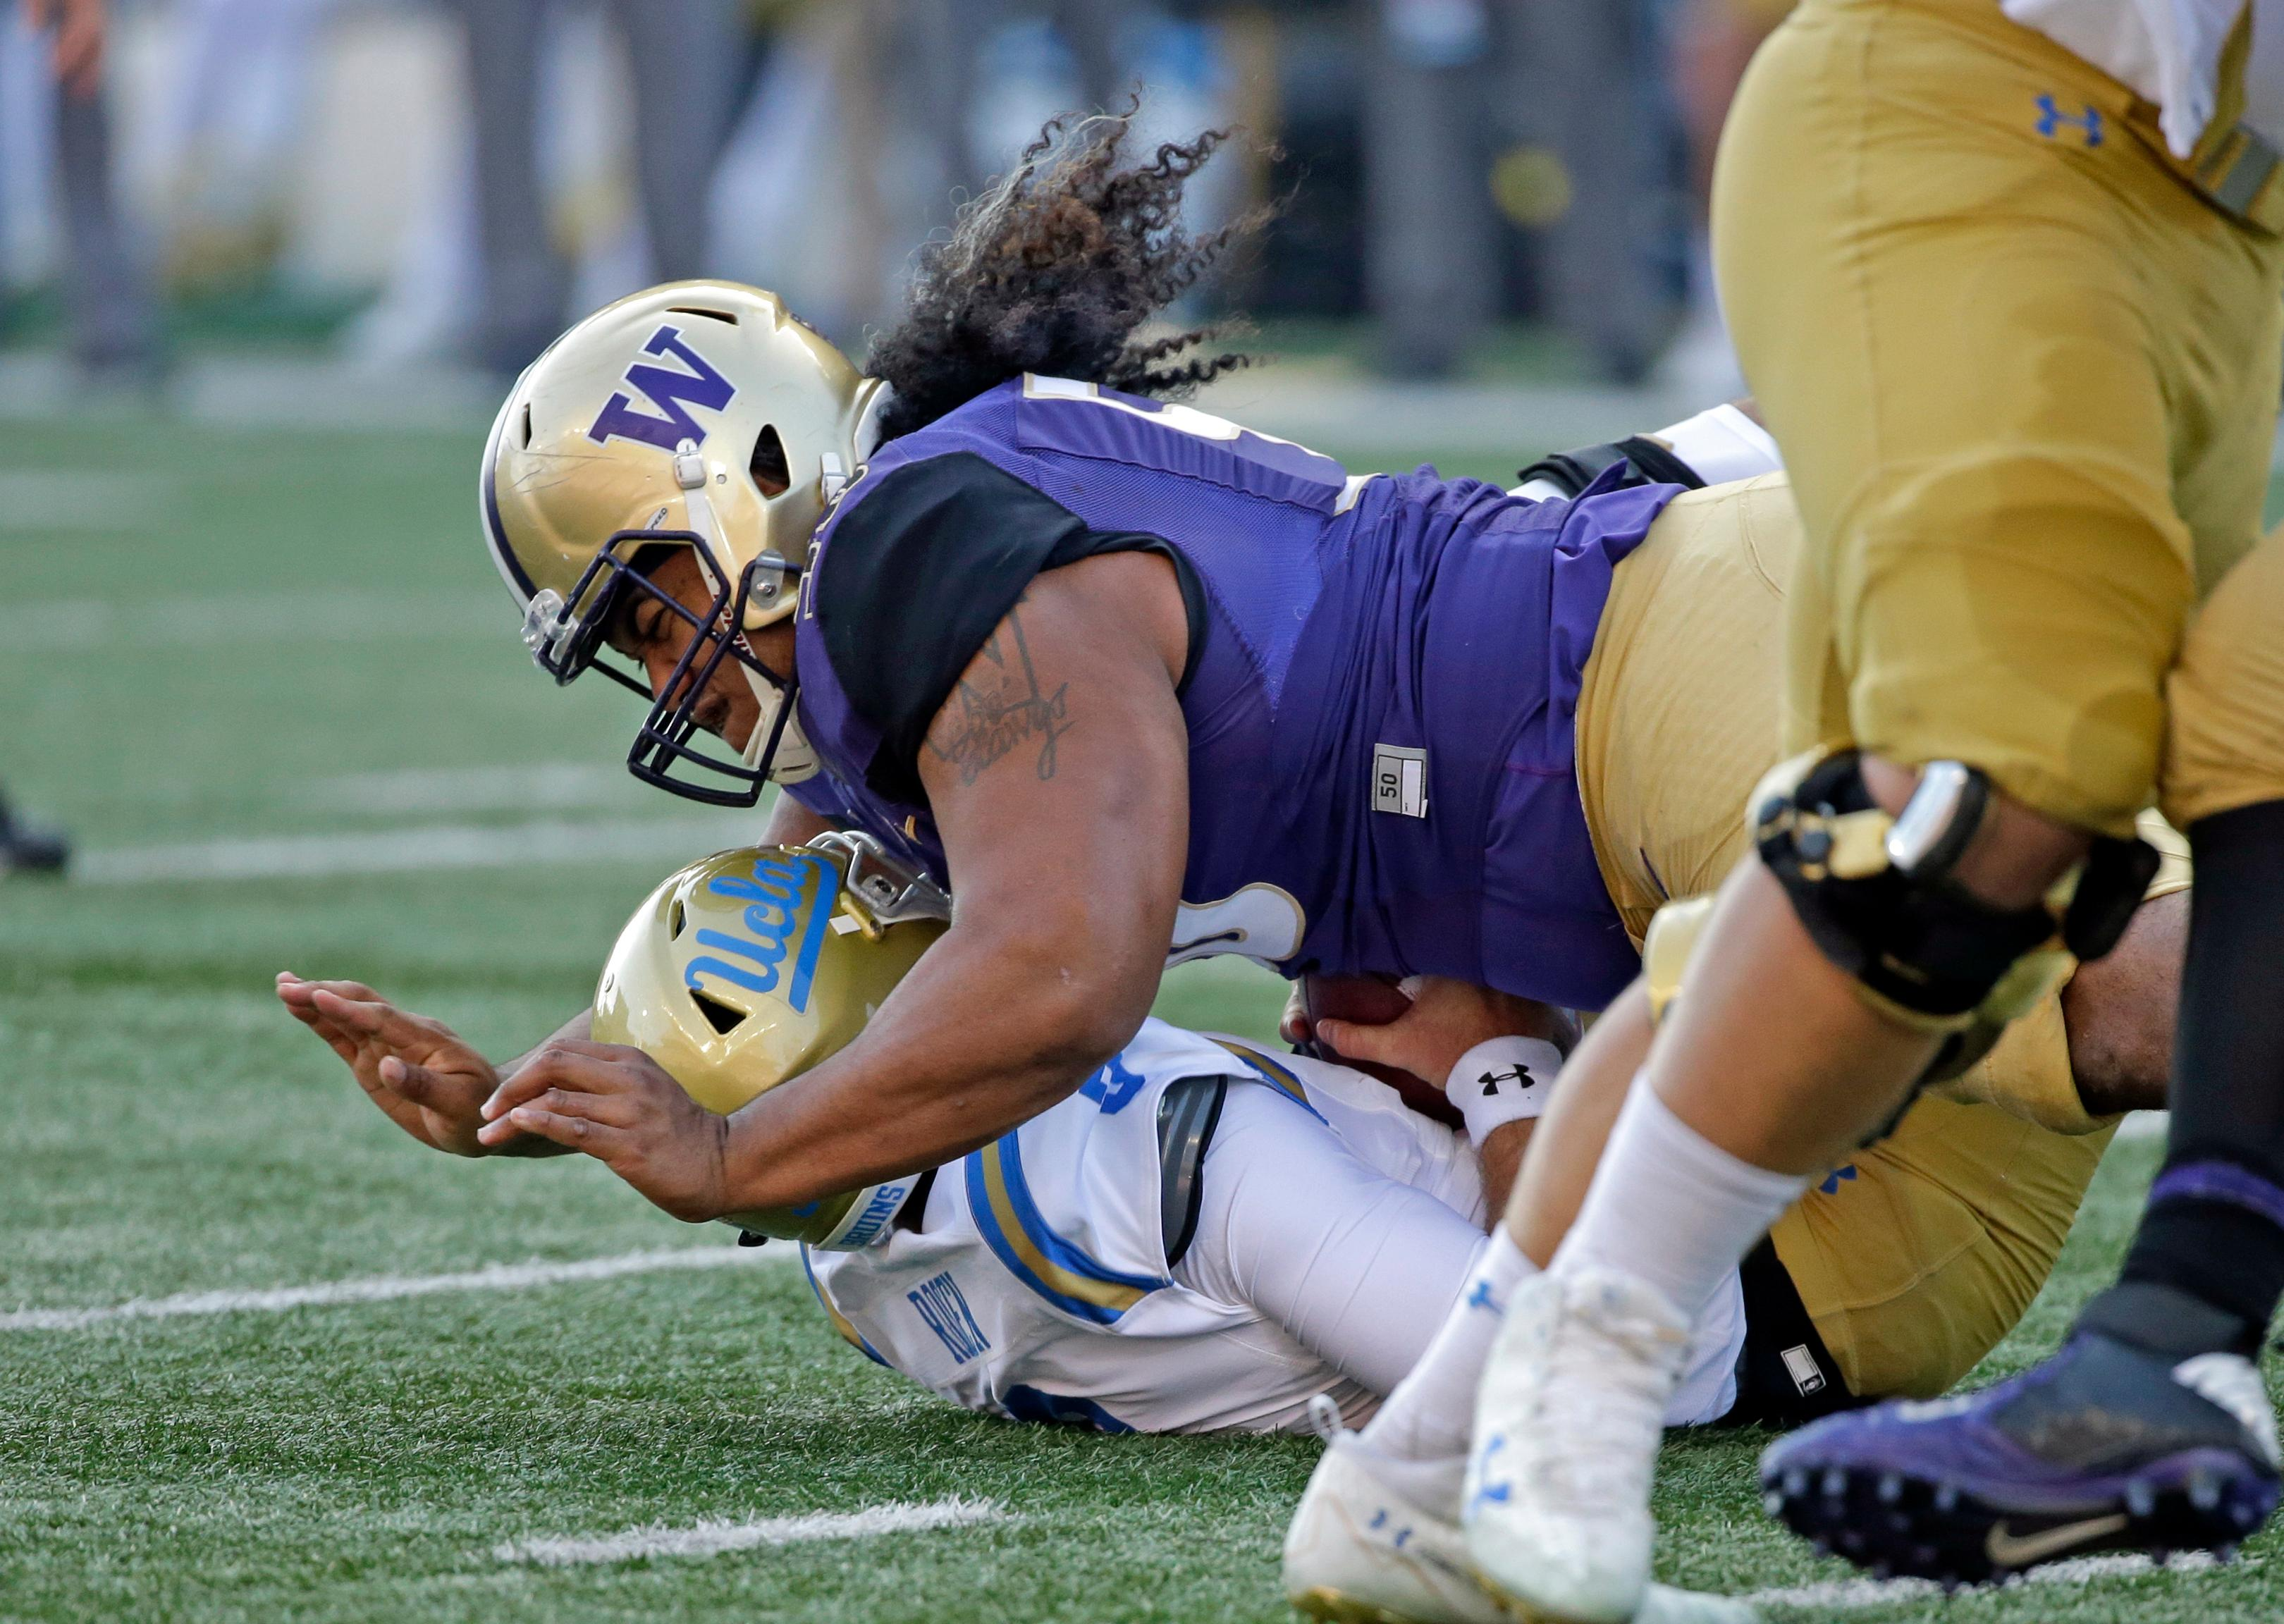 FILE - In this Oct. 28, 2017, file photo, Washington's Vita Vea sacks UCLA quarterback Josh Rosen in the first half of an NCAA college football game, in Seattle. Vea was selected to the AP All-Conference Pac-12 team announced Thursday, Dec. 7, 2017. (AP Photo/Elaine Thompson, File)